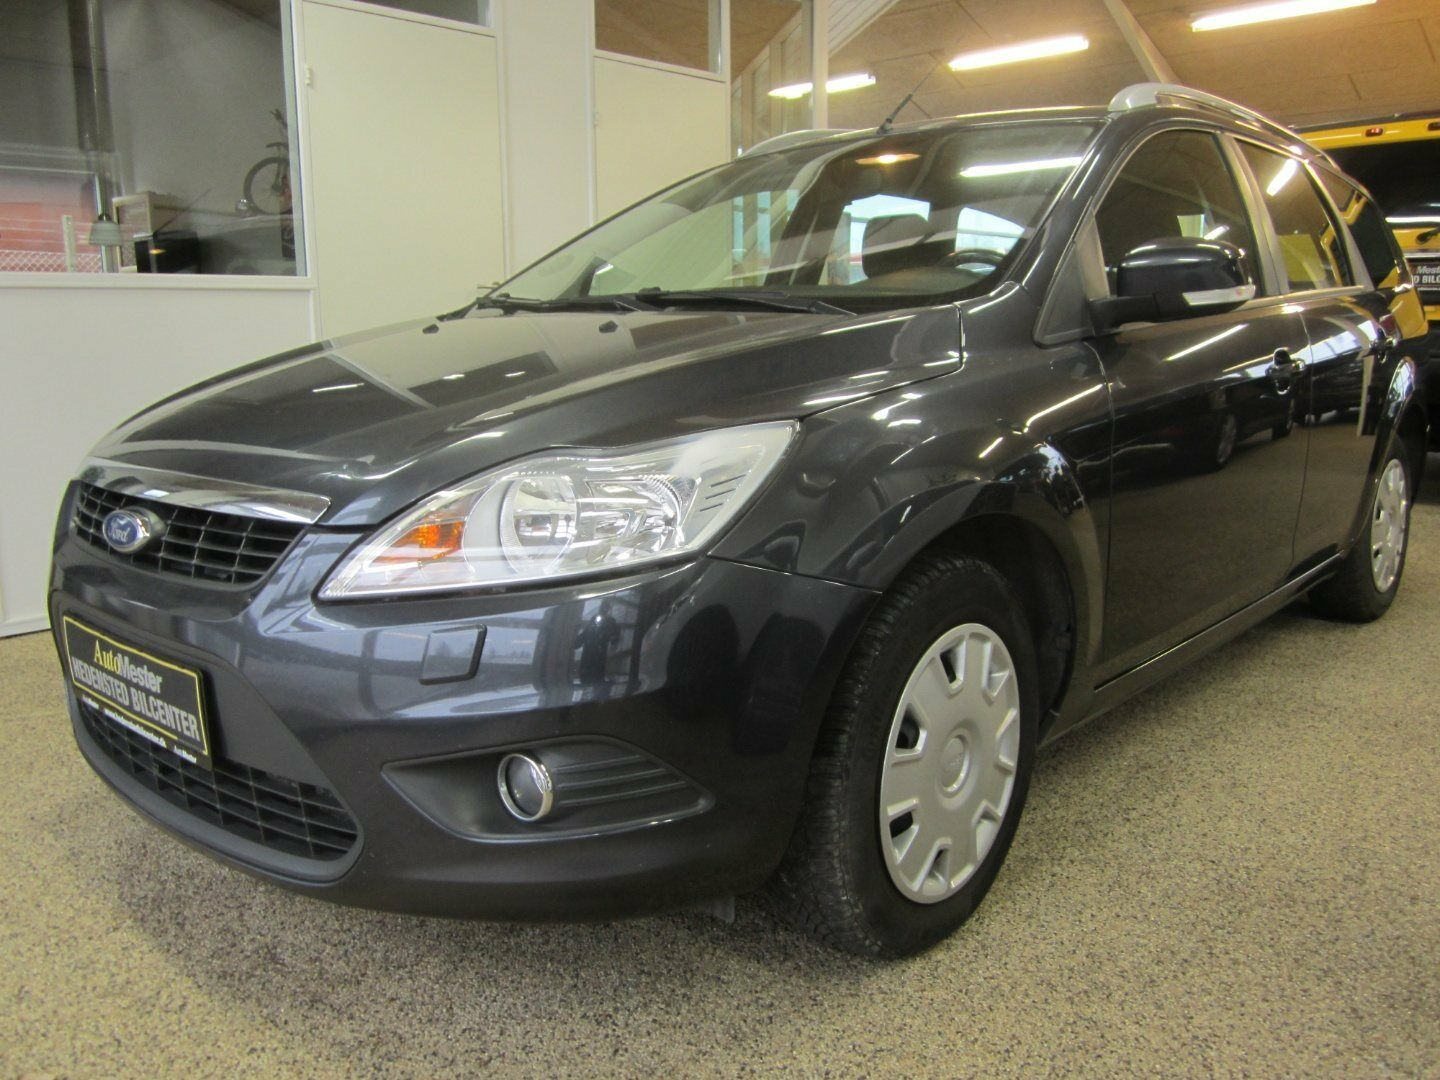 Ford Focus 1,6 TDCi 109 Trend Collection stc. 5d - 49.900 kr.